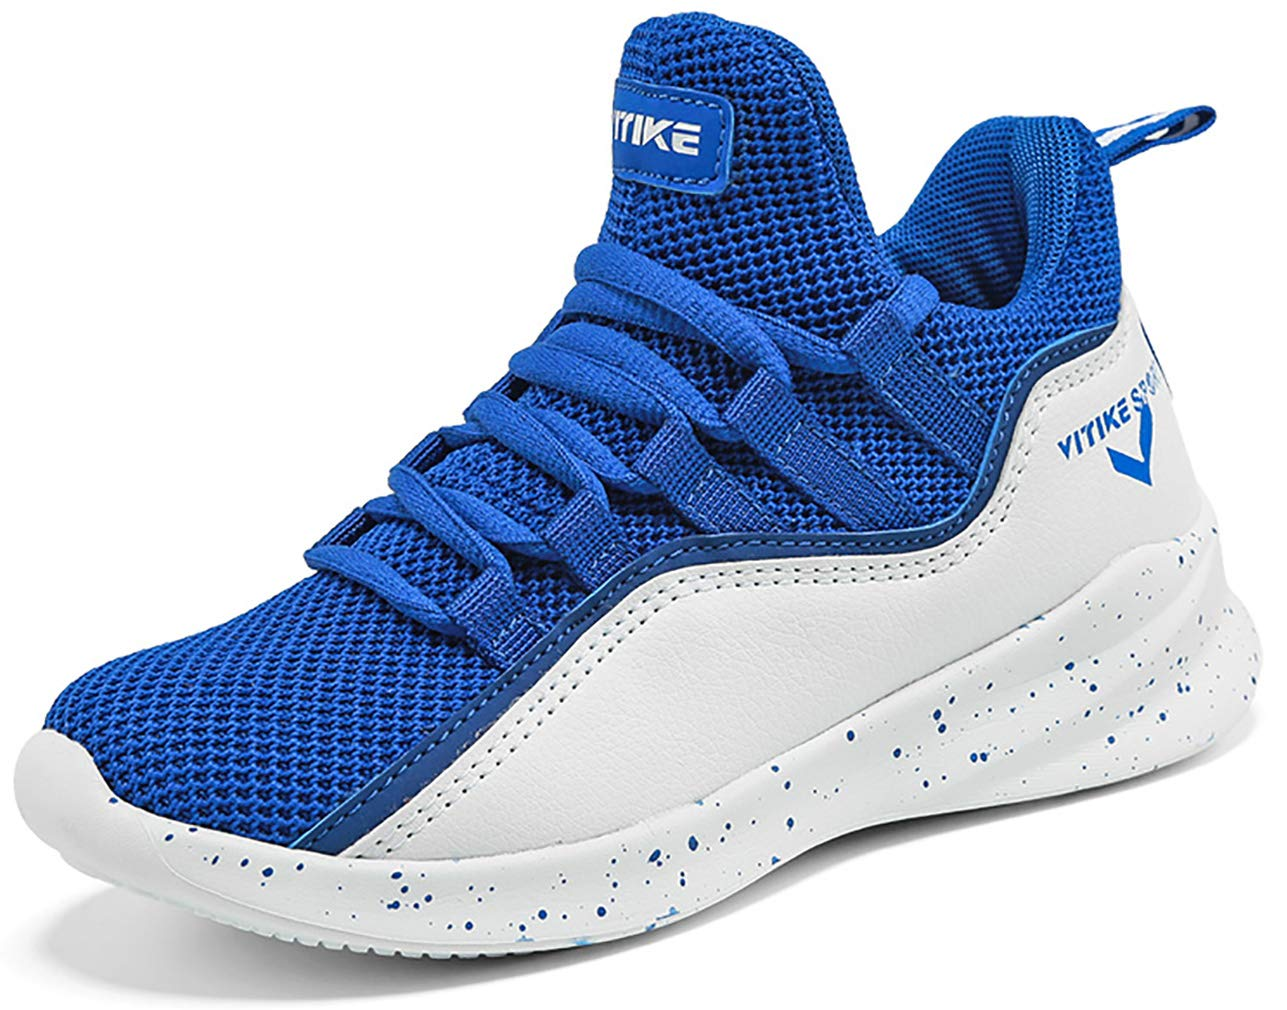 Littleplum Kids Shoes Basketball Shoes for Boys Running Shoes Fashion Sneakers